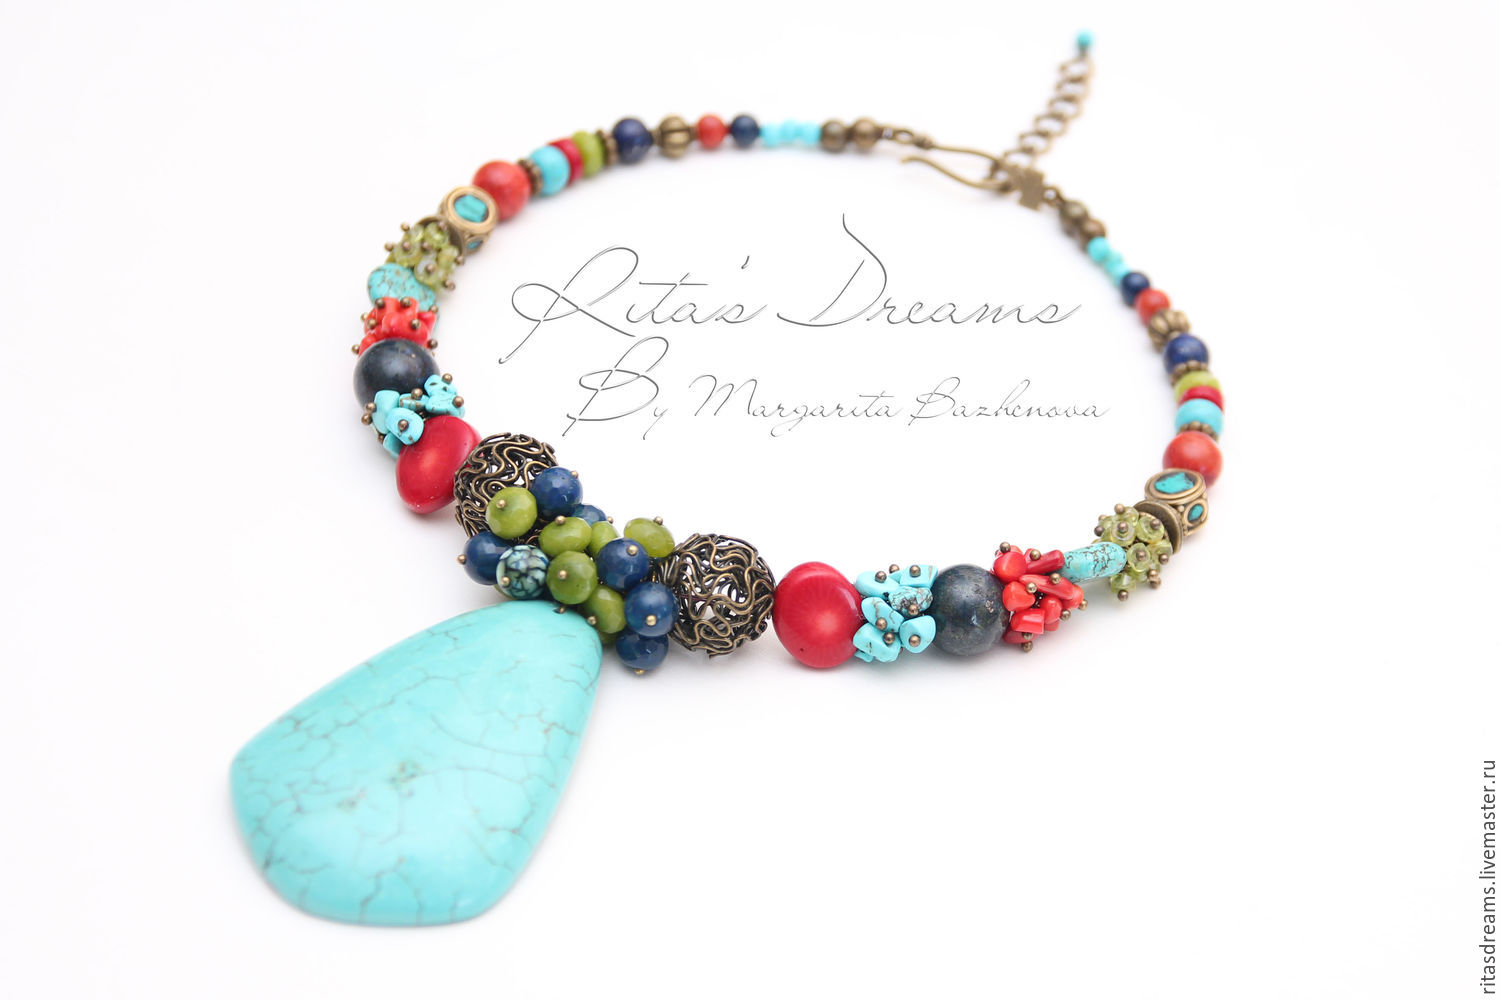 Necklace bright cheerful colors of natural stones with large turquoise pendant conjures up thoughts about the hottest time of year - summer with its variety of colors and flowers.